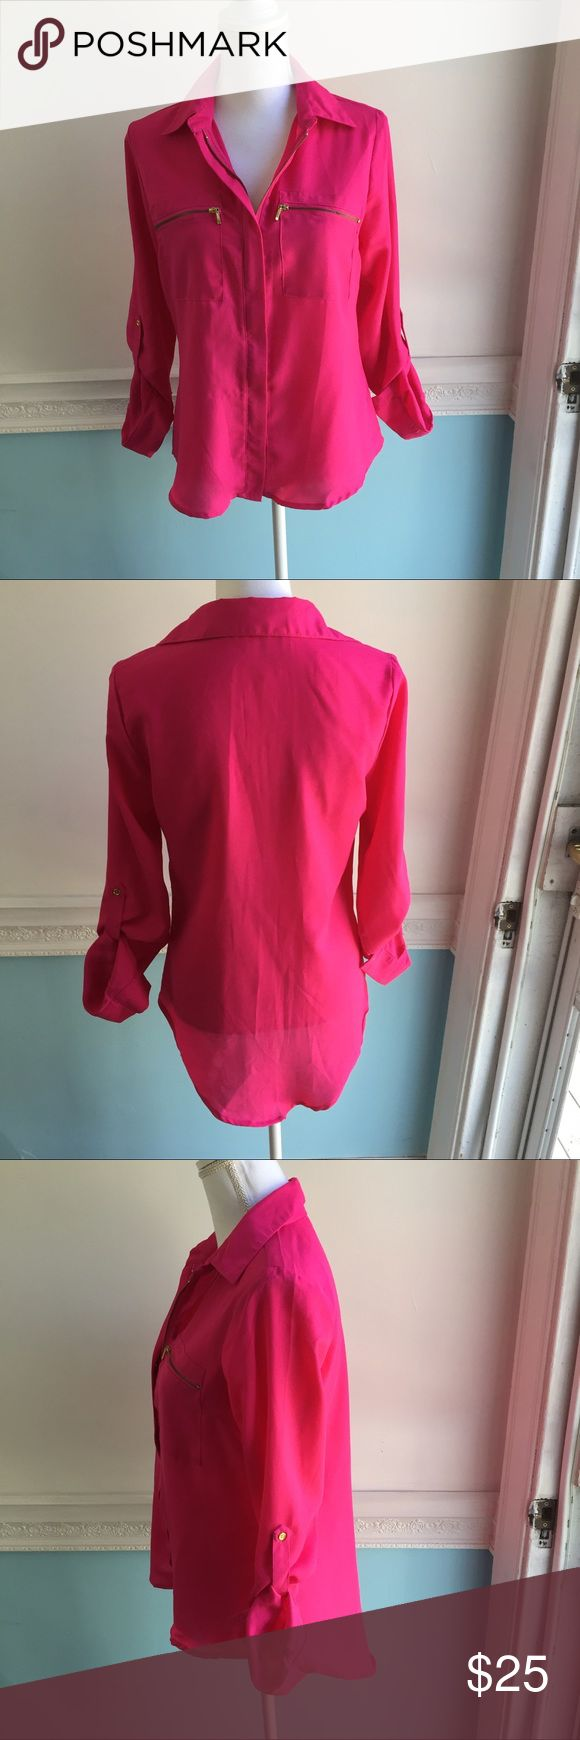 LIVE 4 TRUTH hot pink blouse with gold zippers This shirt is so cute and in great condition! Perfect accenting with the gold zippers. Zippers work. Live 4 Truth Tops Button Down Shirts